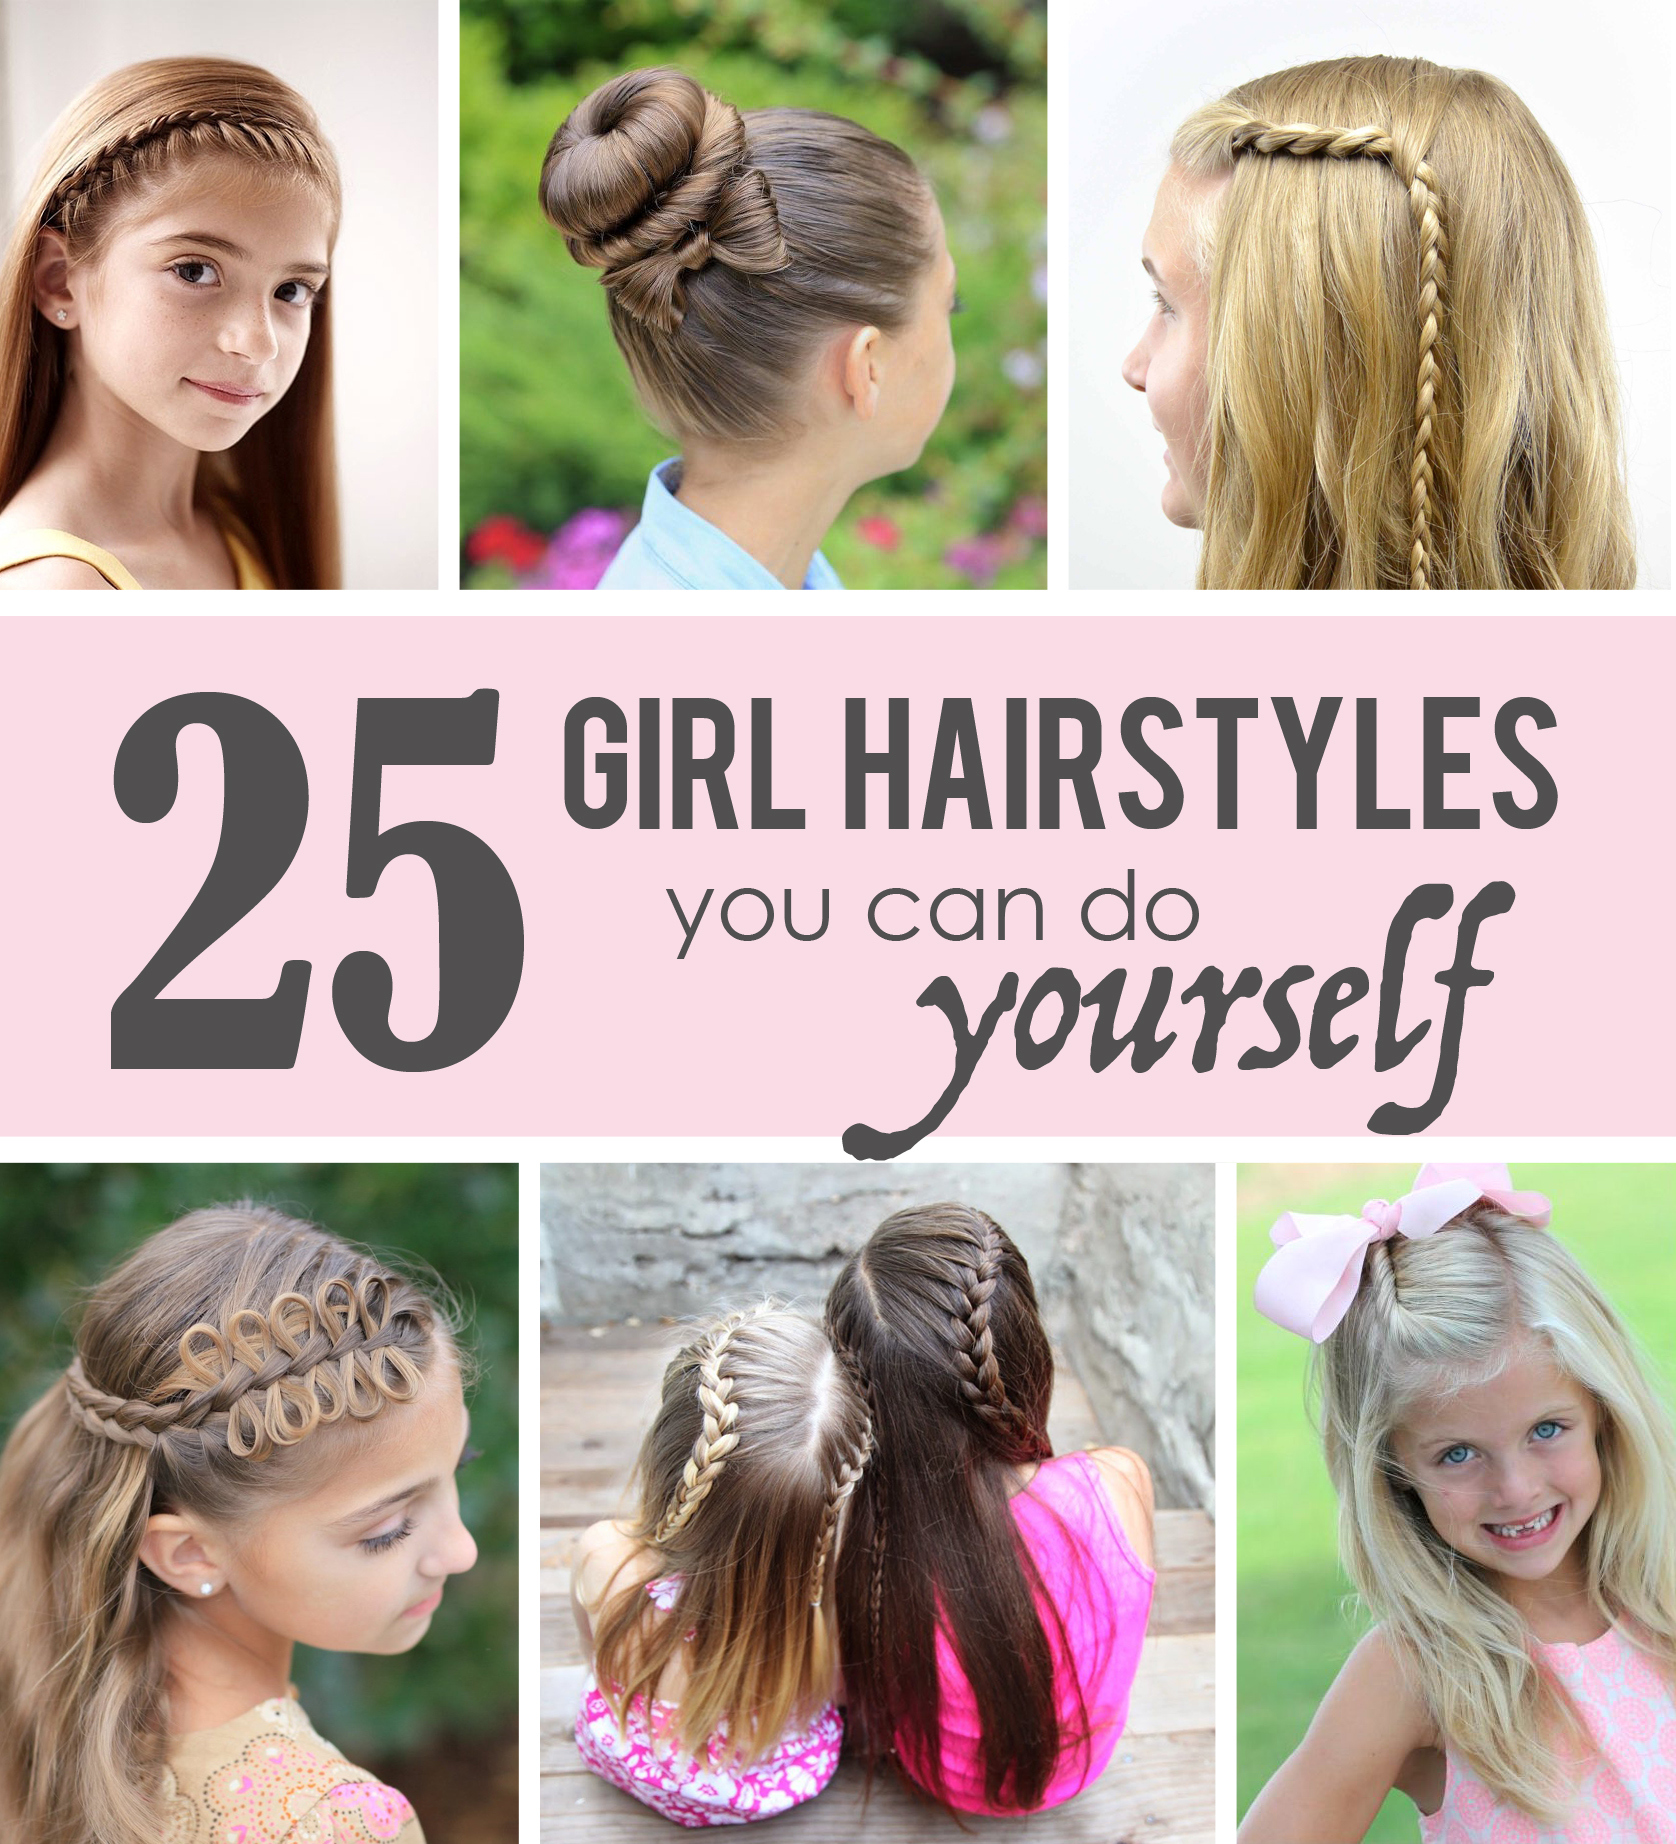 Super 25 Little Girl Hairstyles You Can Do Yourself Hairstyle Inspiration Daily Dogsangcom